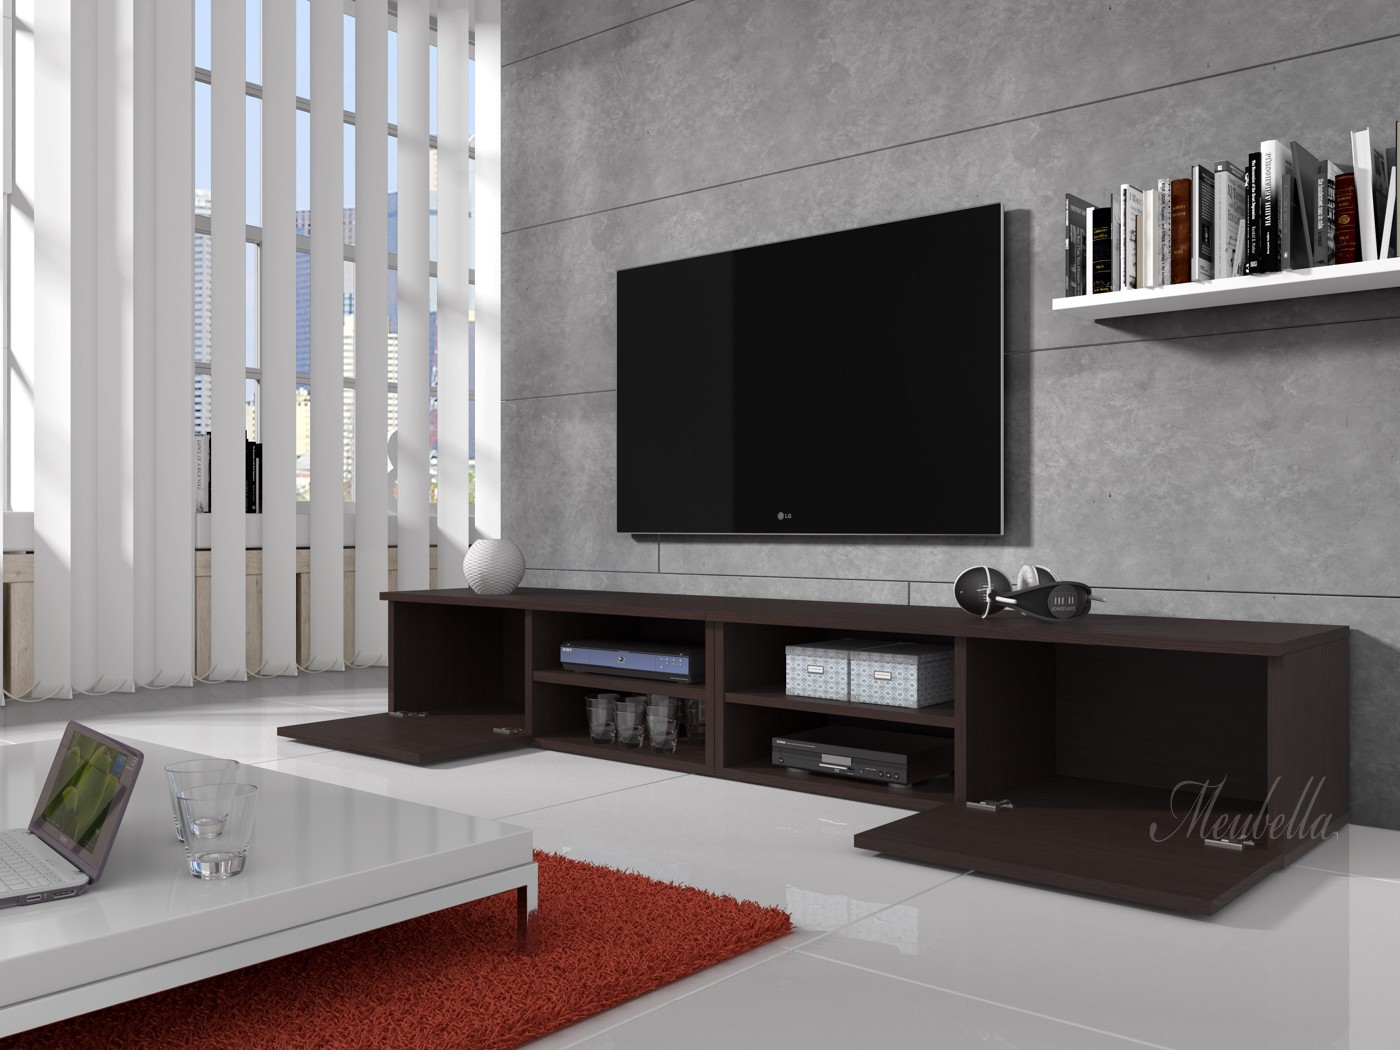 Tv meubel bash ii wenge 240 cm meubella for Showroommodellen design meubels